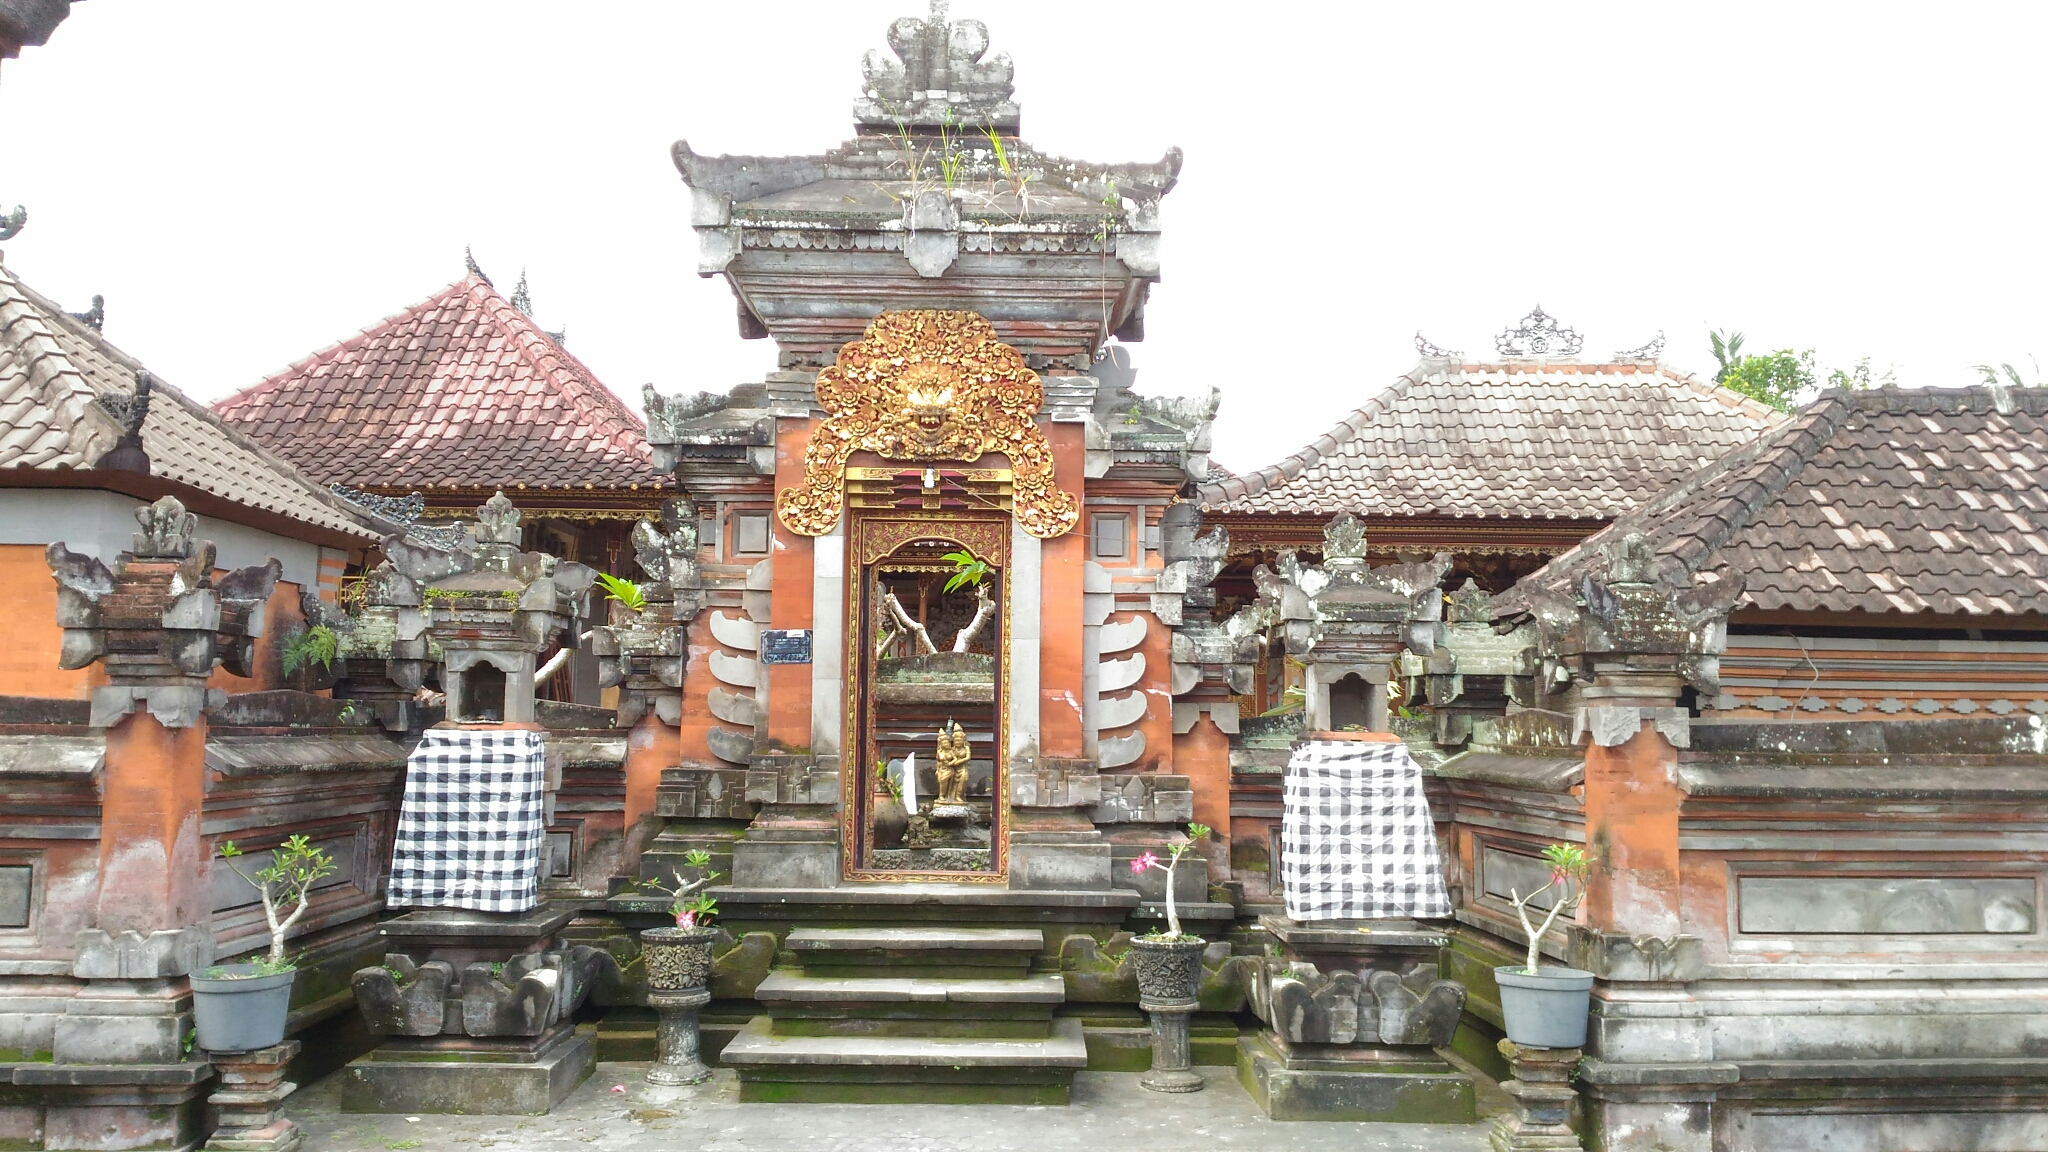 Kori Agung - Bali study tour - Bali Tour Packages, YOEXPLORE